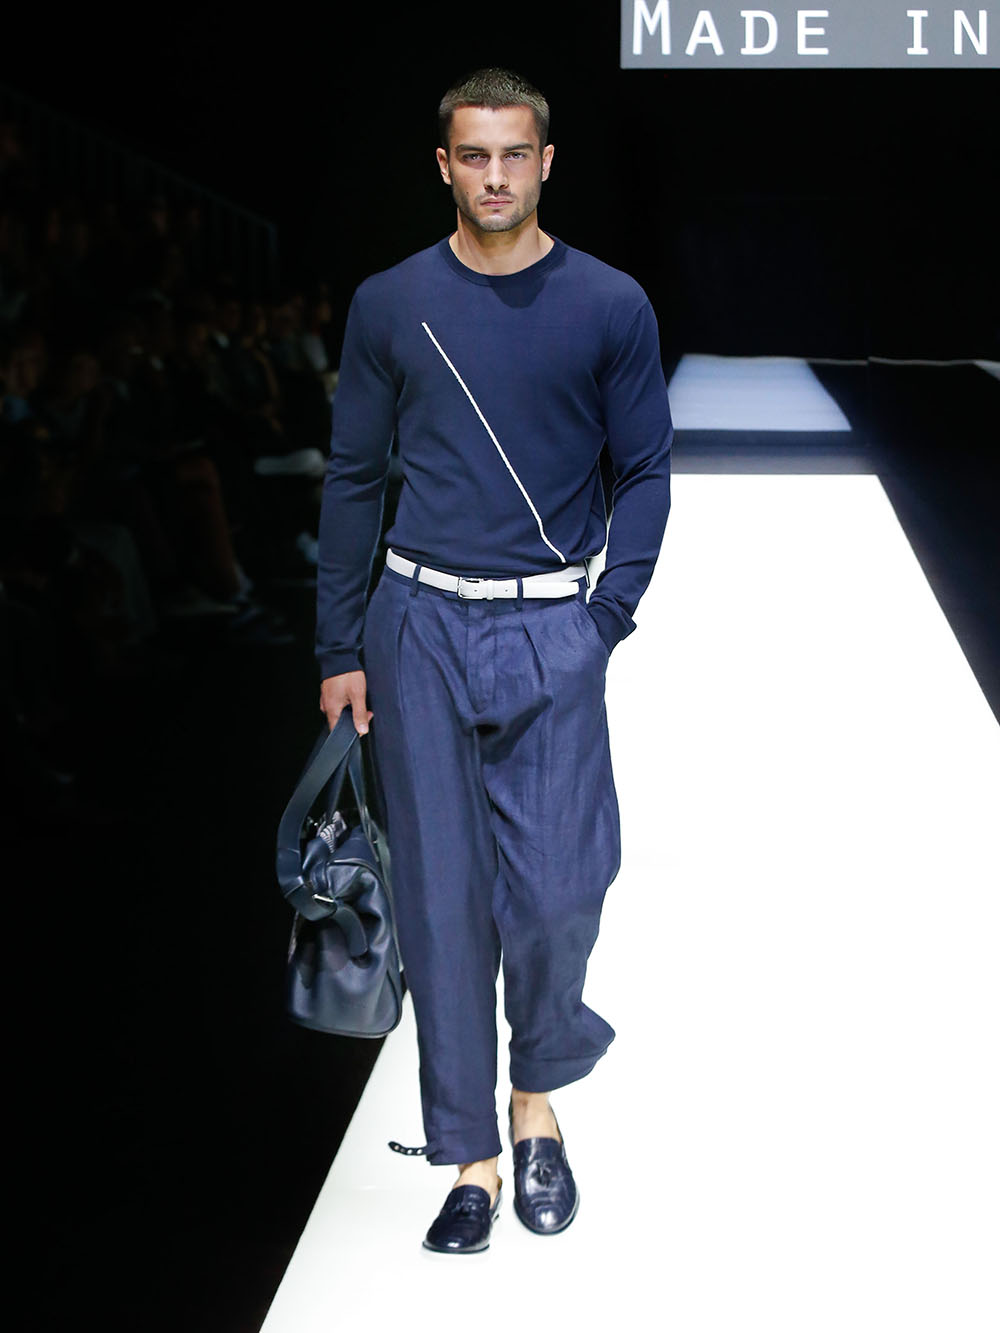 GIORGIO ARMANI_2018_SS_COLLECTION_Made in Armani (72)